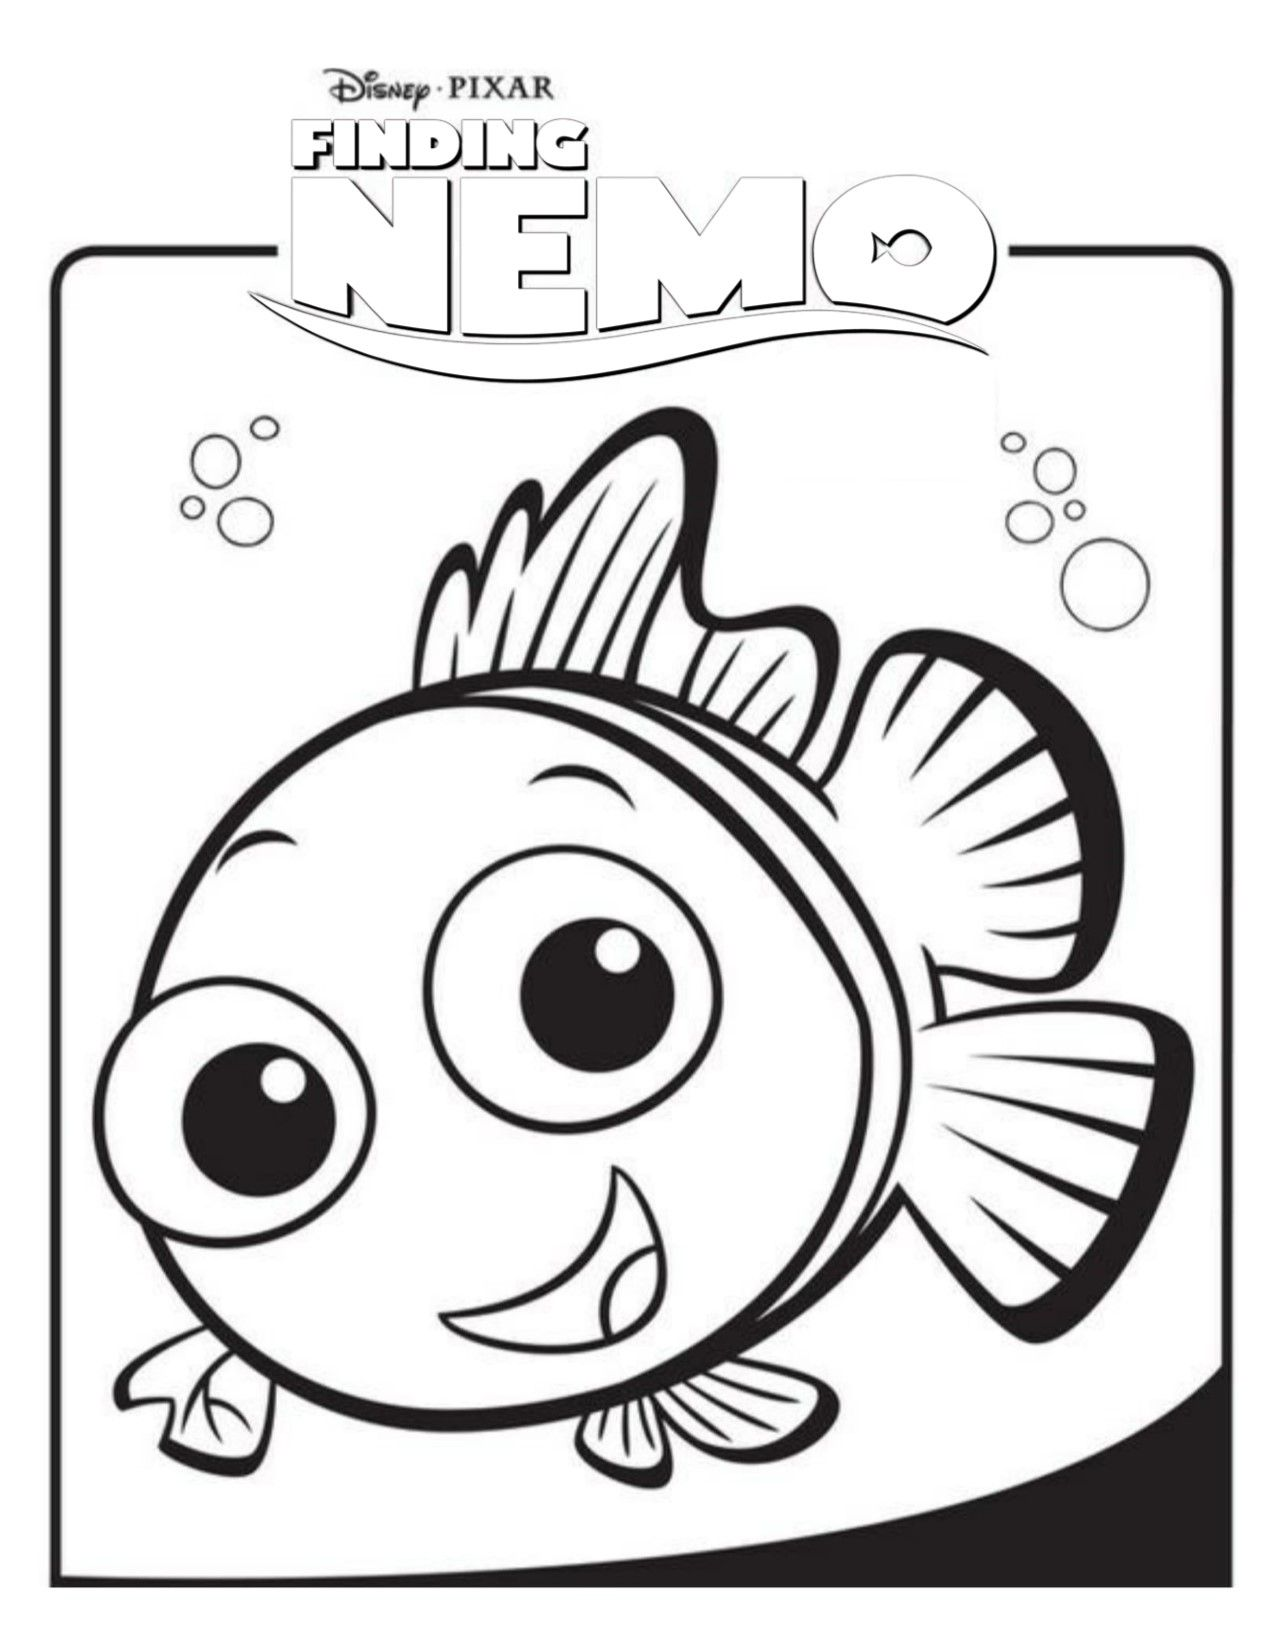 Finding Nemo White Logo With Images